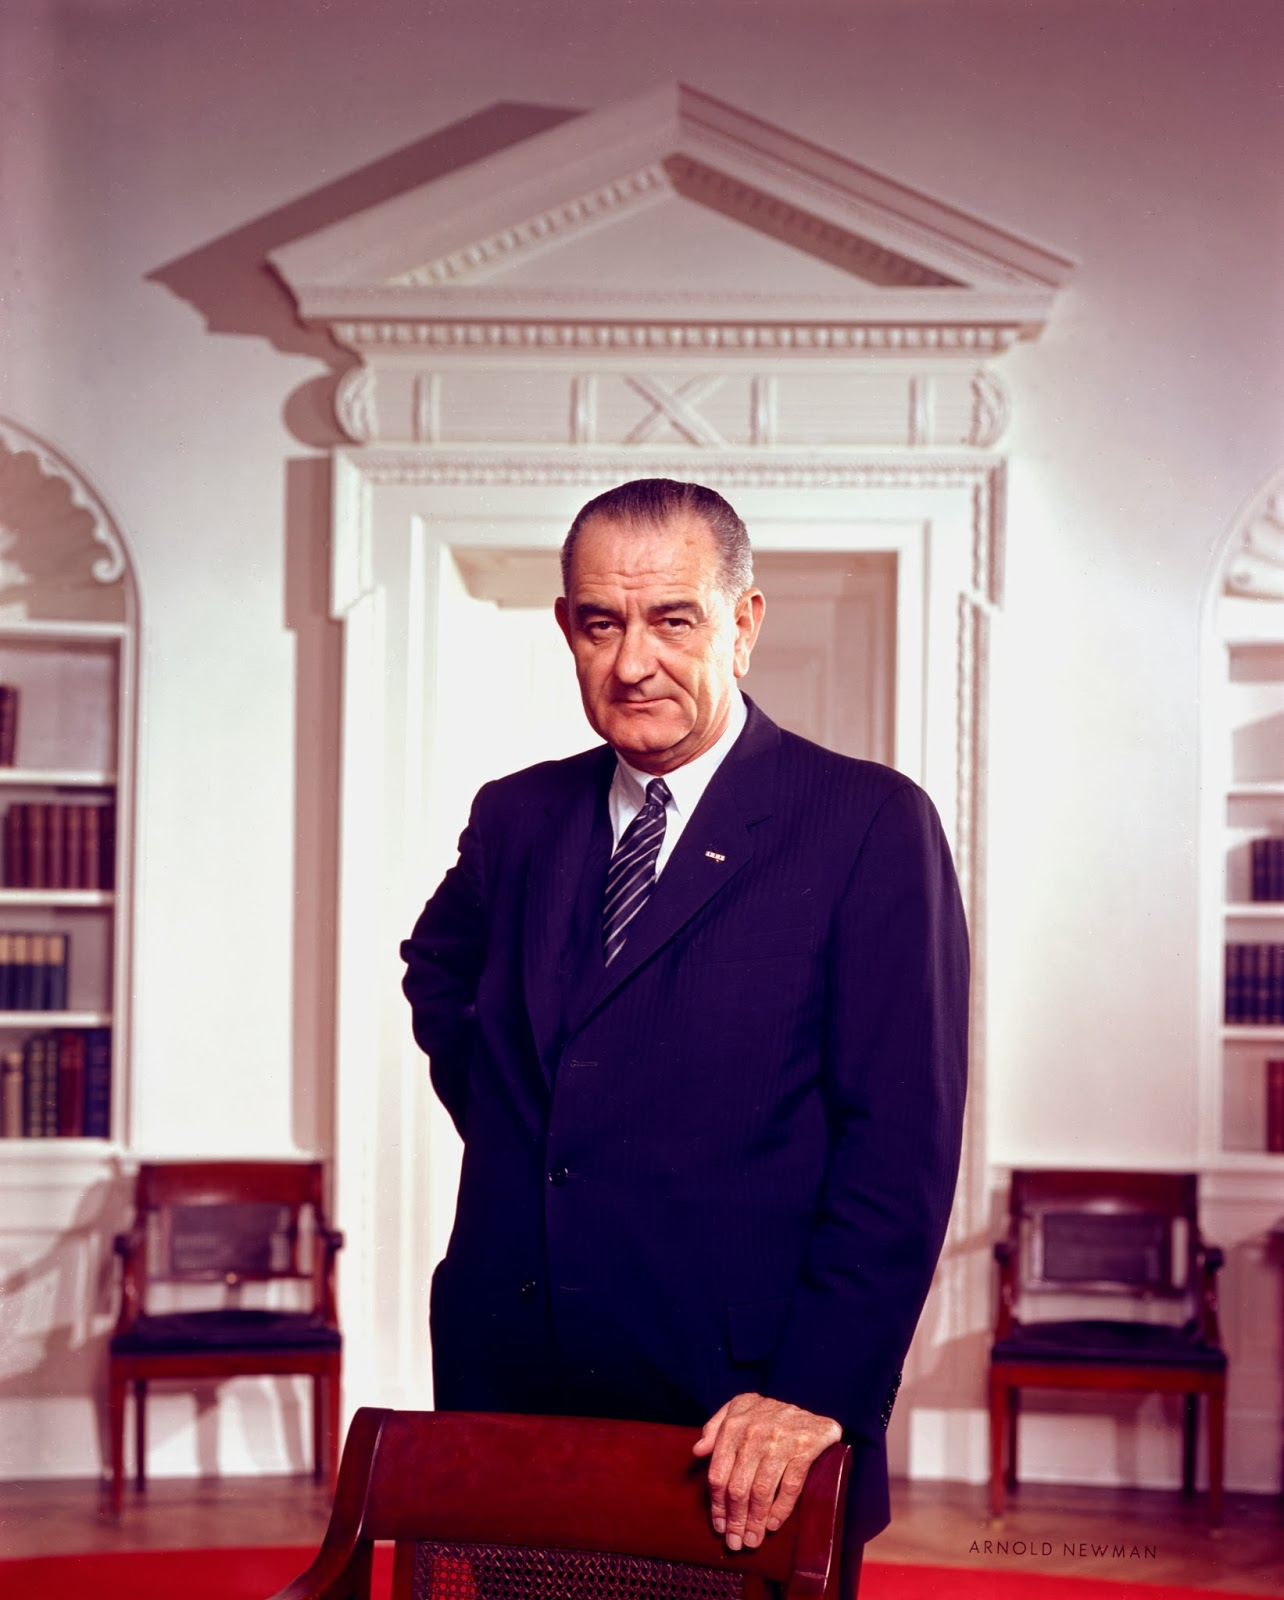 a biography and life work of lyndon johnson 36th president of the united states Lyndon b johnson was the 36th president of the united states learn about his his life as a teacher, his role in the vietnam war, and his work on civil rights.